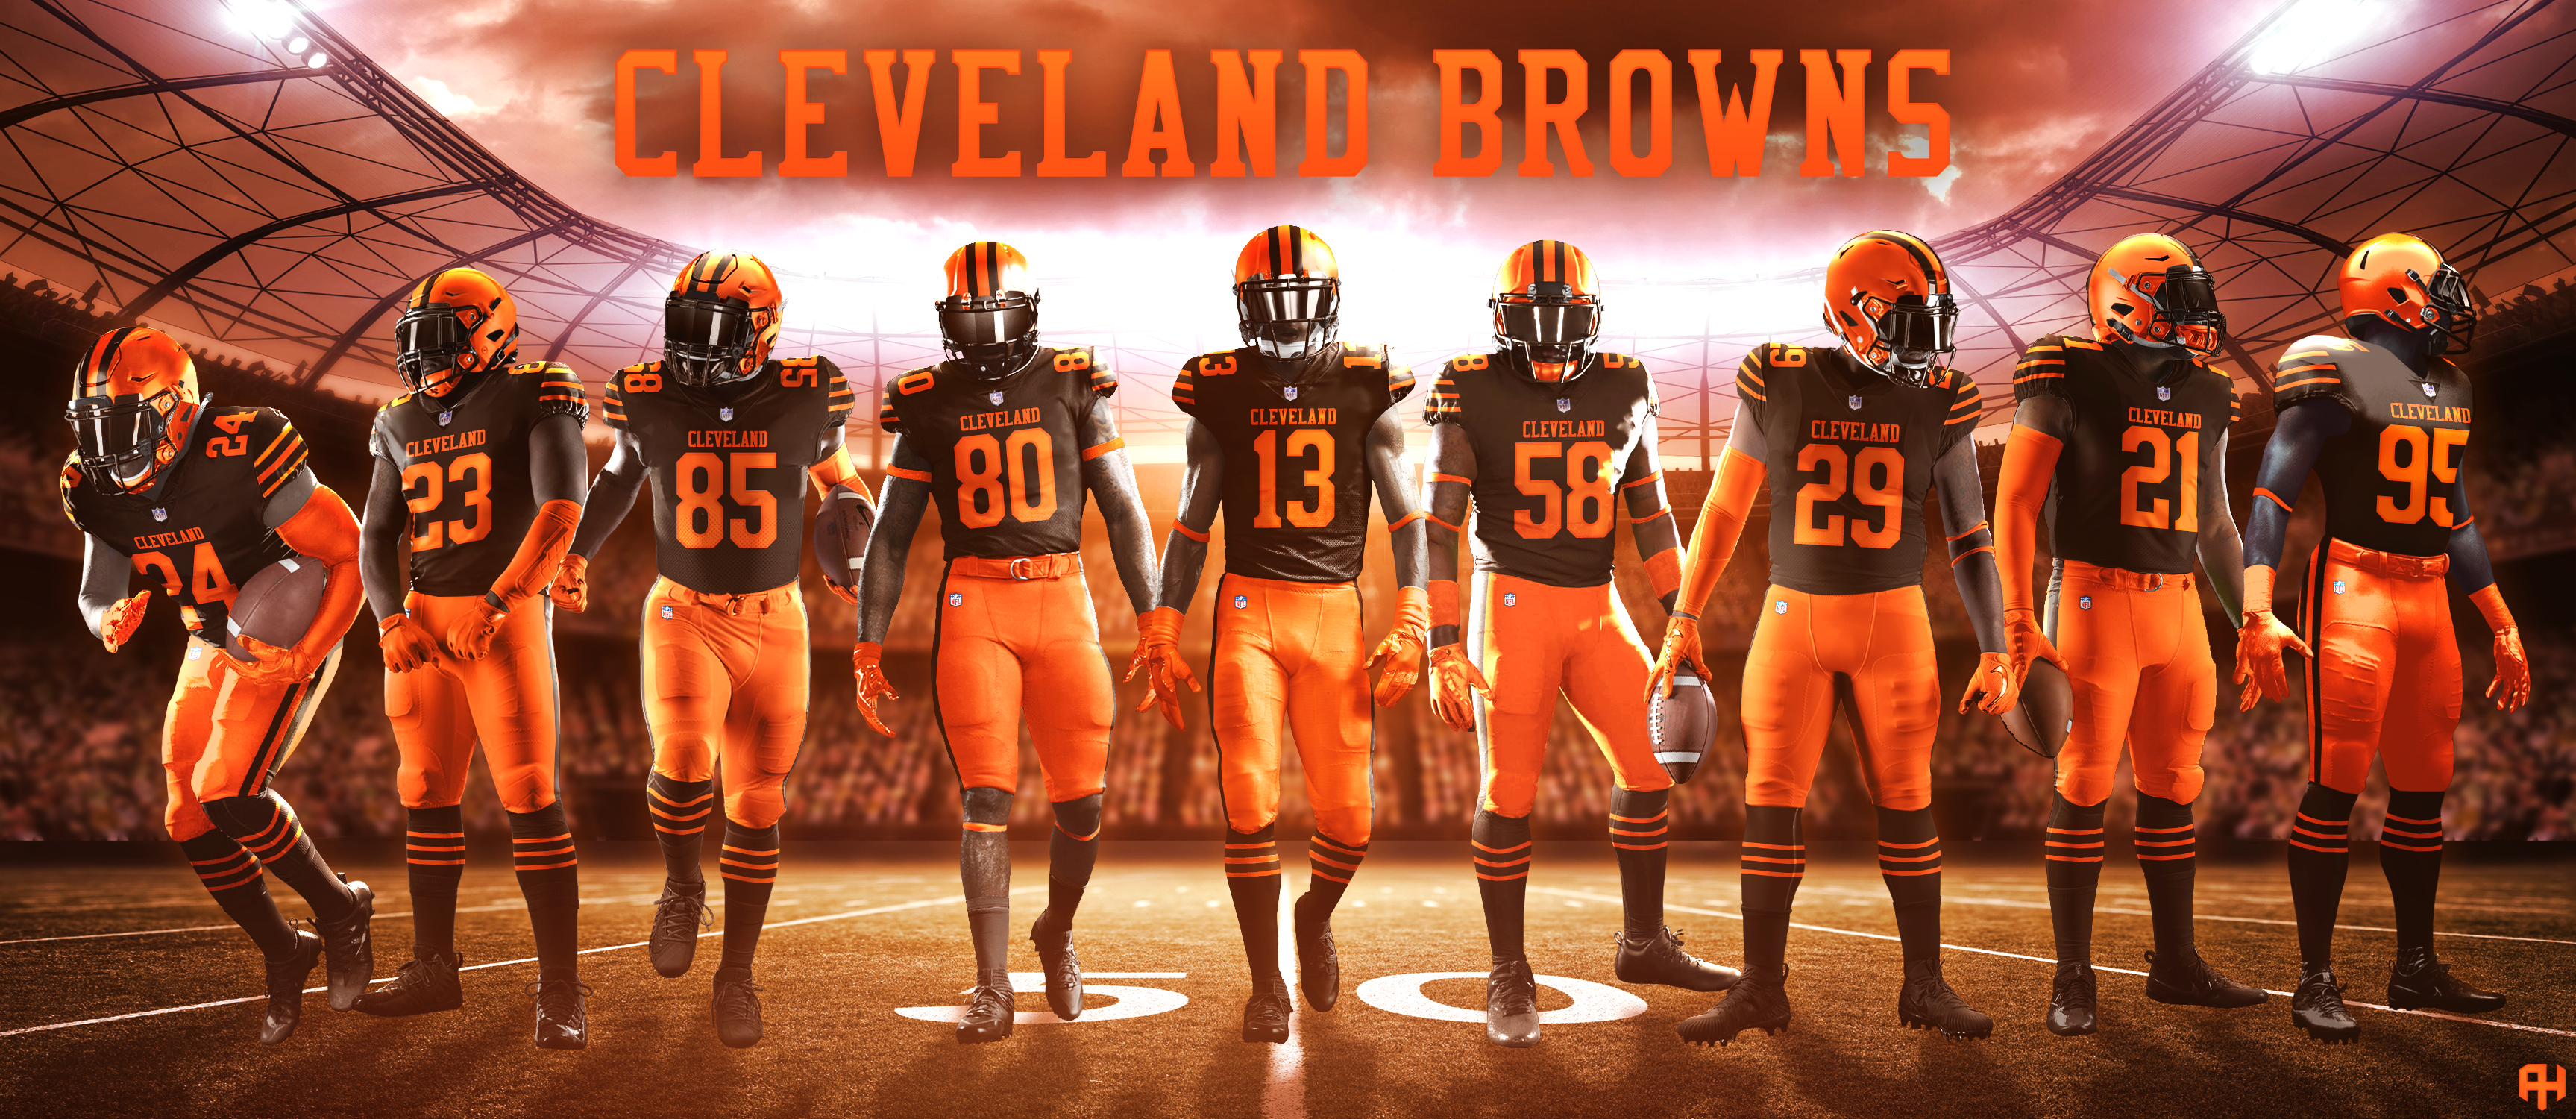 Browns Color Rush 2020.Cleveland Browns 2020 Concepts Chris Creamer S Sports